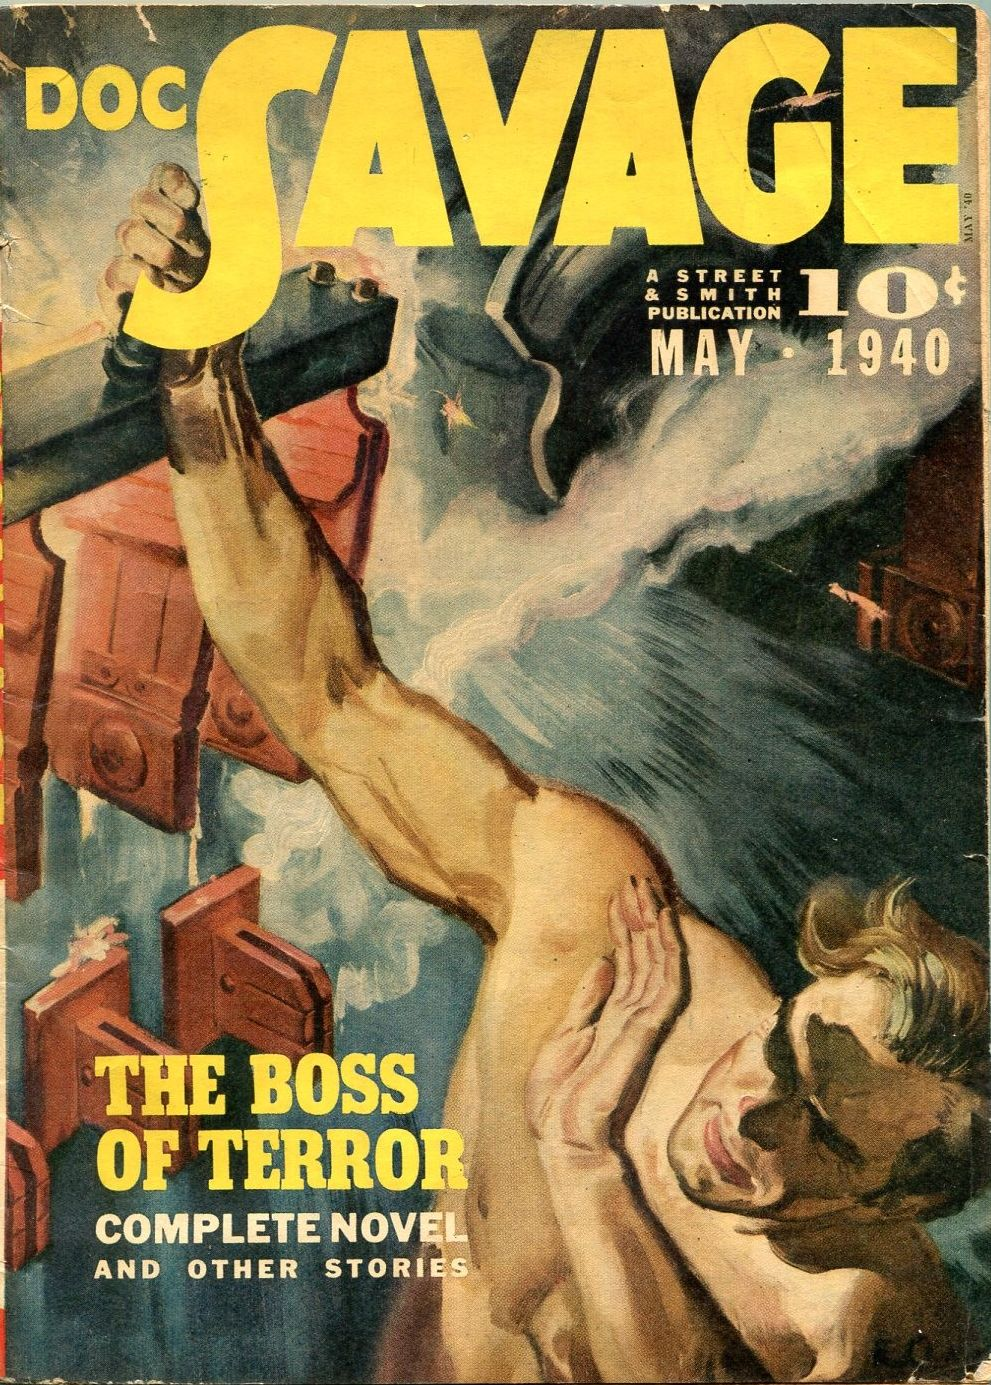 DOC SAVAGE #10, The Phantom City by Kenneth Robeson